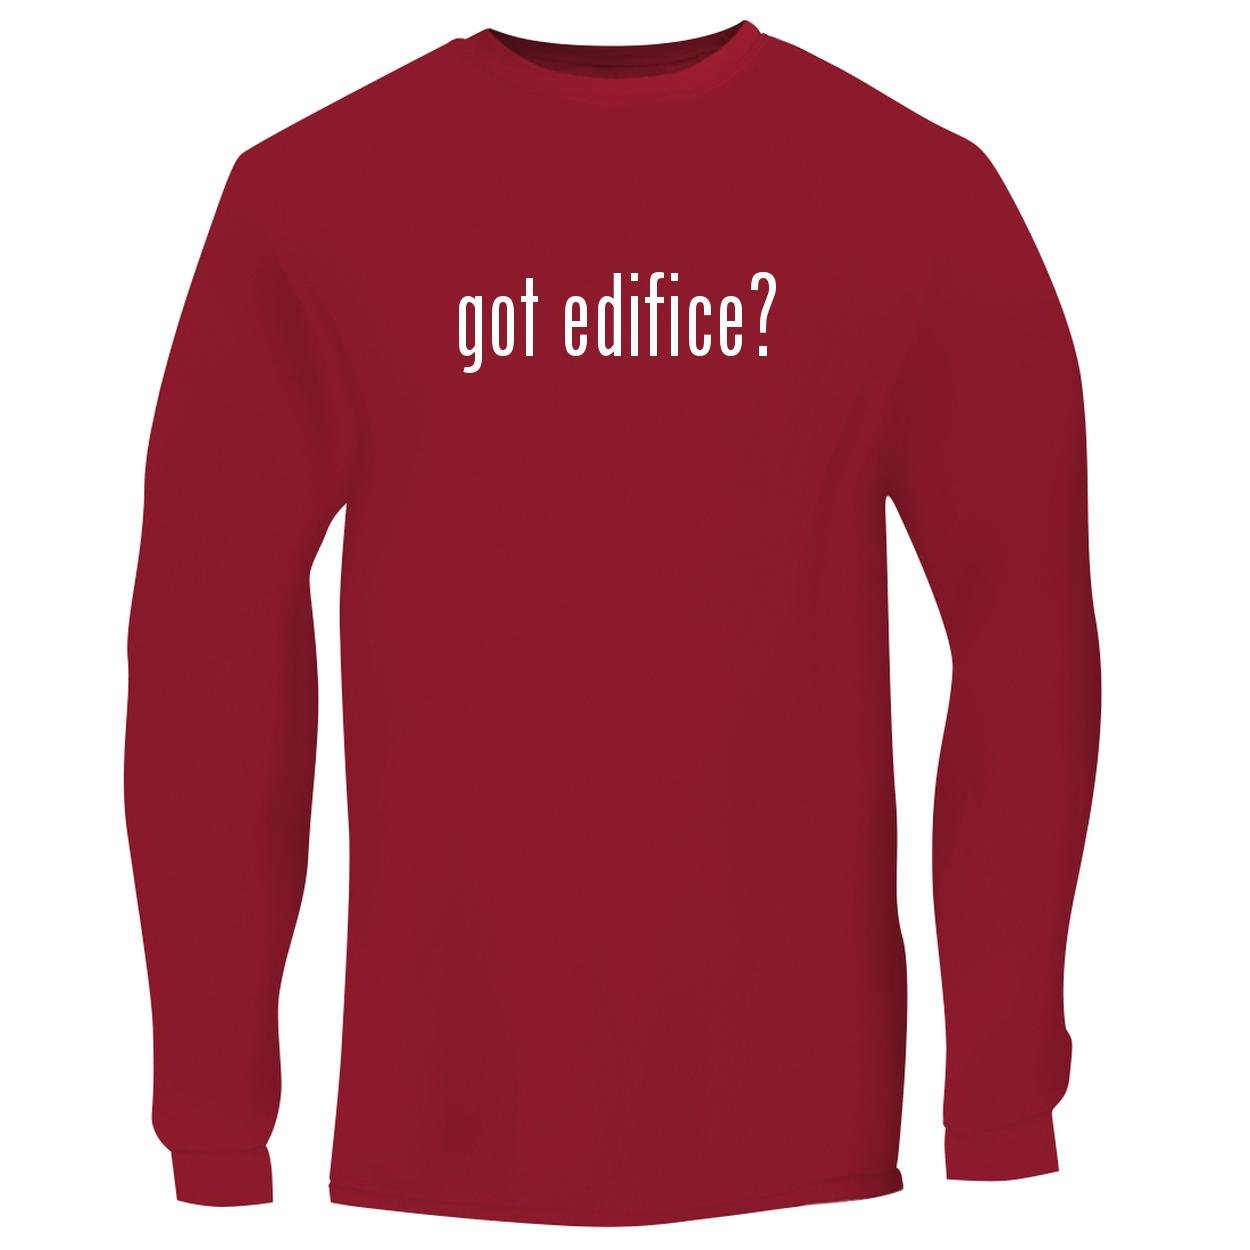 BH Cool Designs got Edifice? - Men's Long Sleeve Graphic Tee, Red, Small